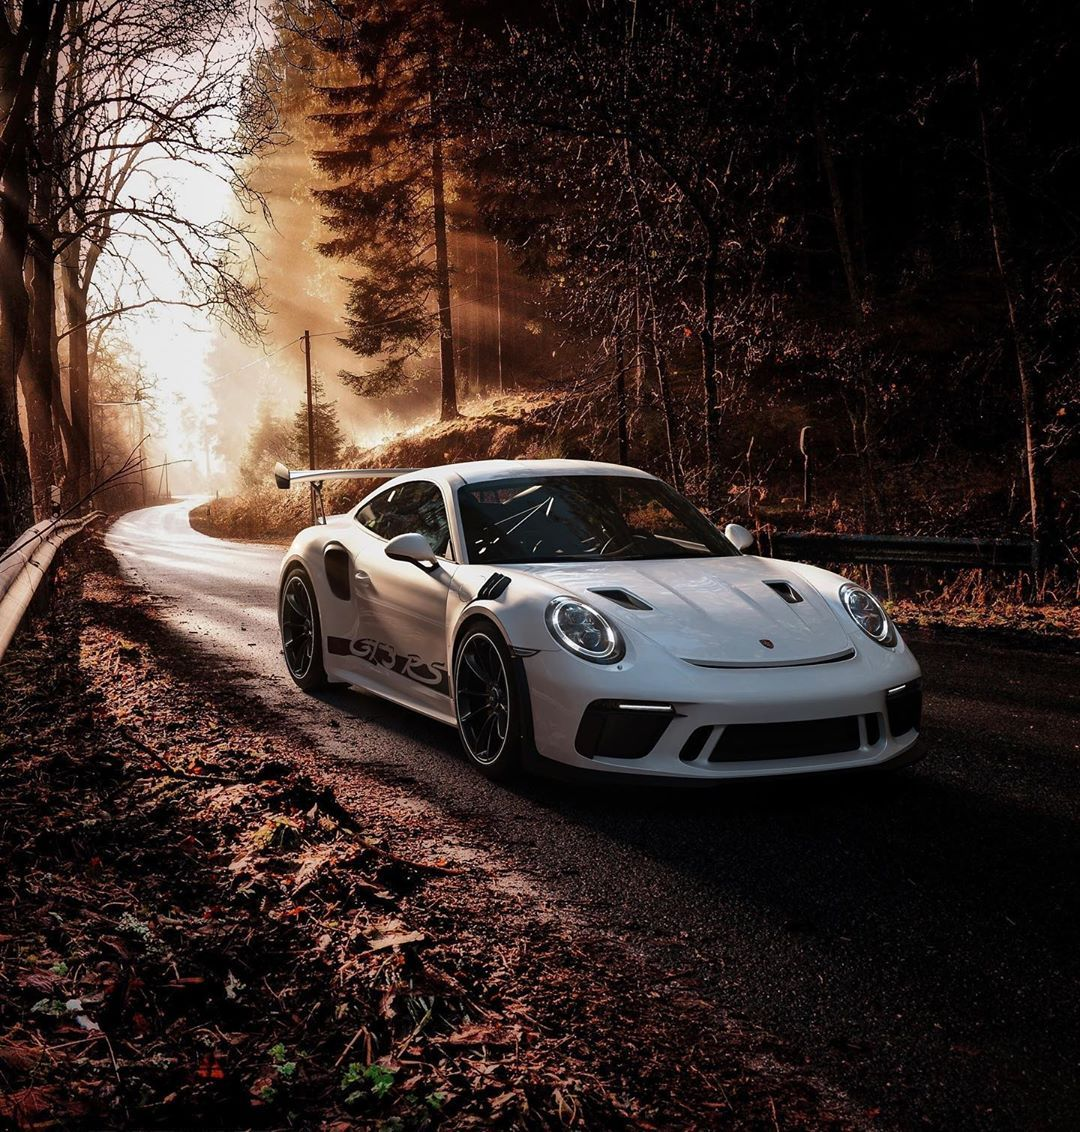 Pin By Kenshi P On Stone And Steel In 2020 Porsche 911 Gt3 Porsche 911 Porsche